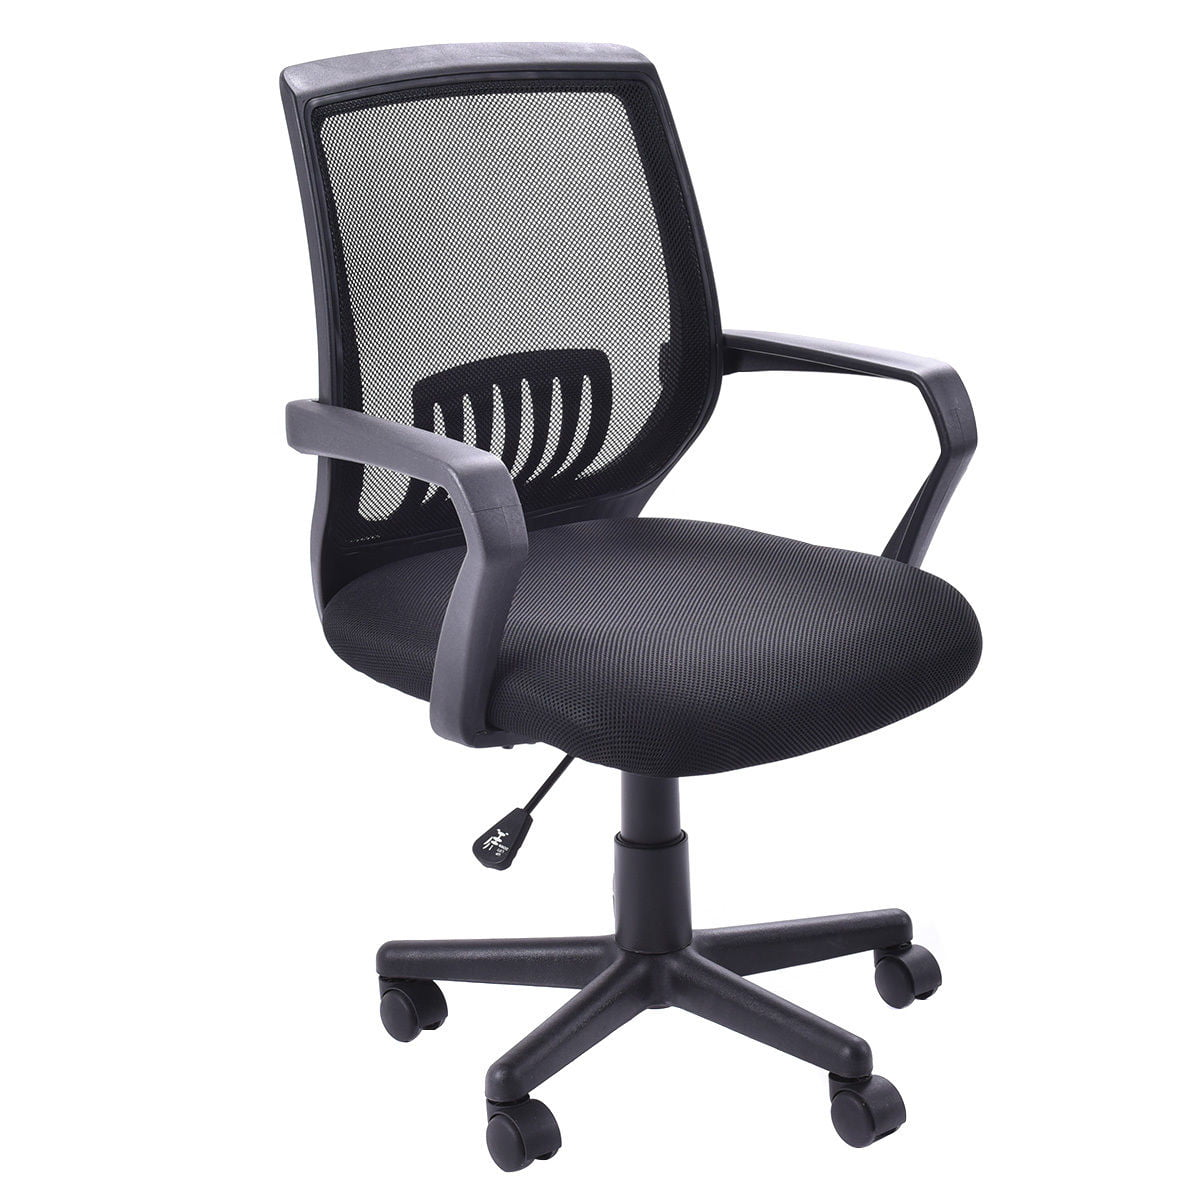 ergonomic esthetician chair amazon gaming costway on walmart seller reviews marketplace ranks